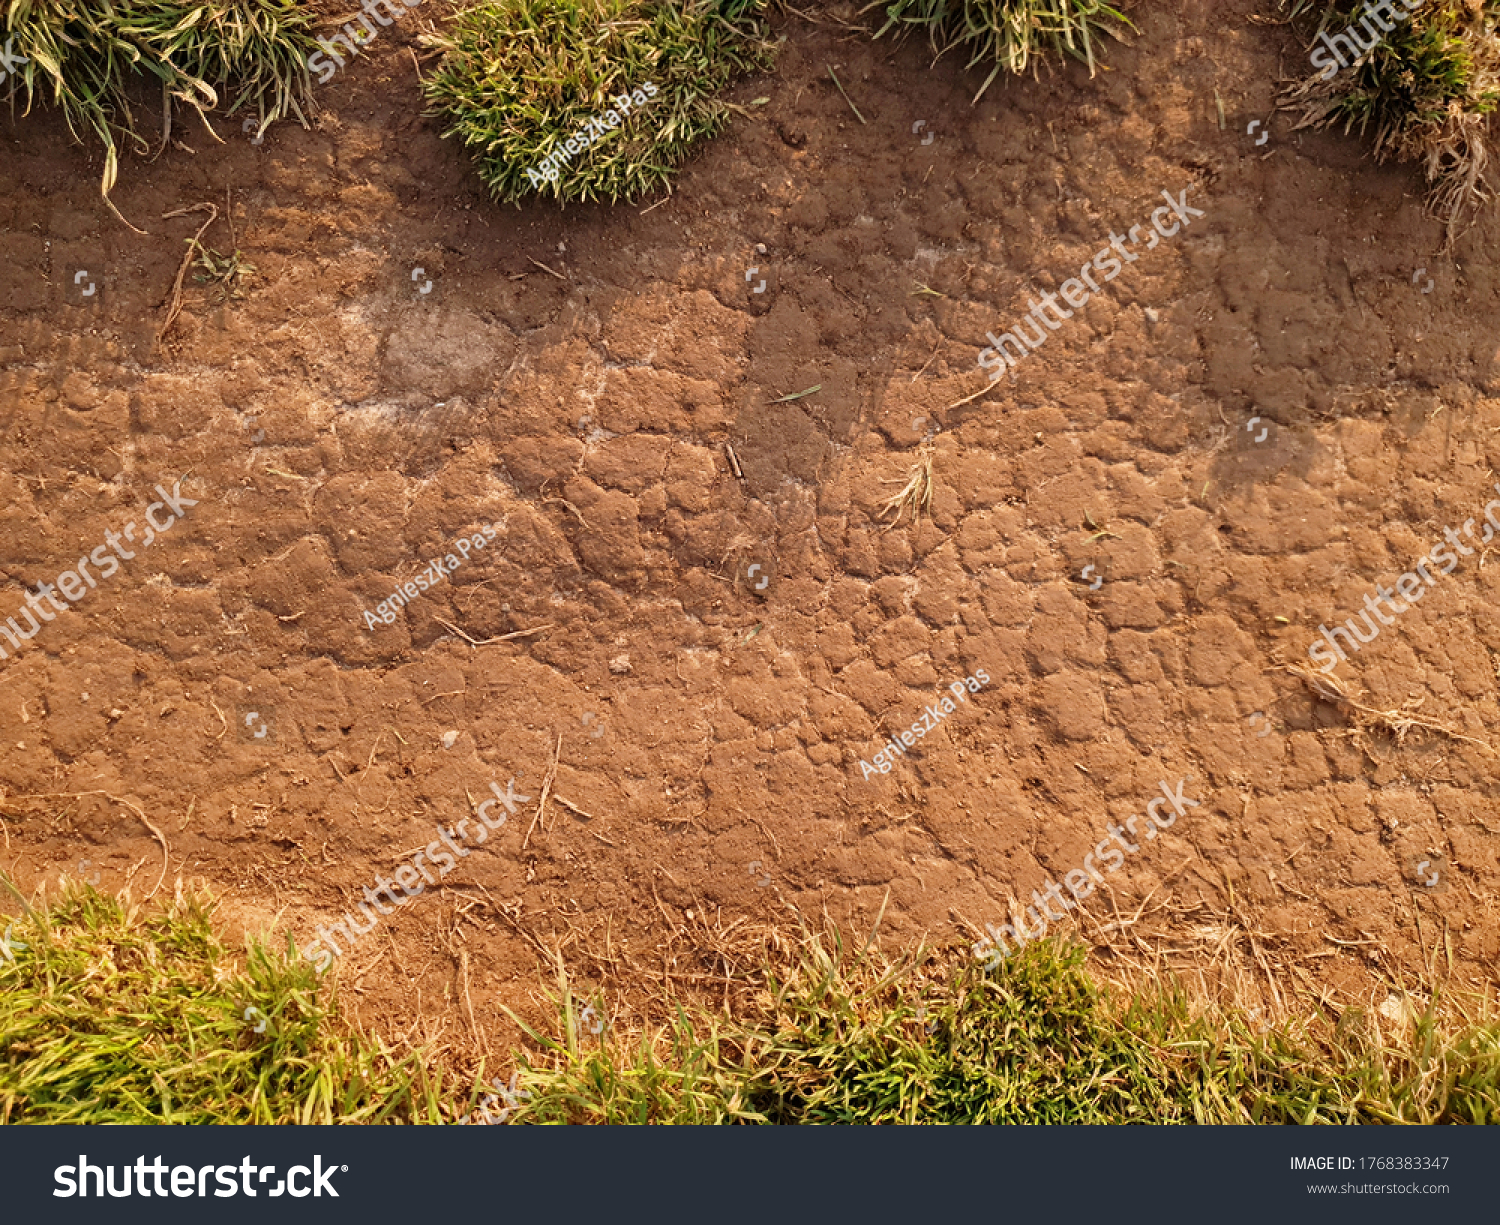 Top view of the soil path on sunny day. Dry cracked ground with dry grass on the top and bottom. Background. Texture. Graphics resources.